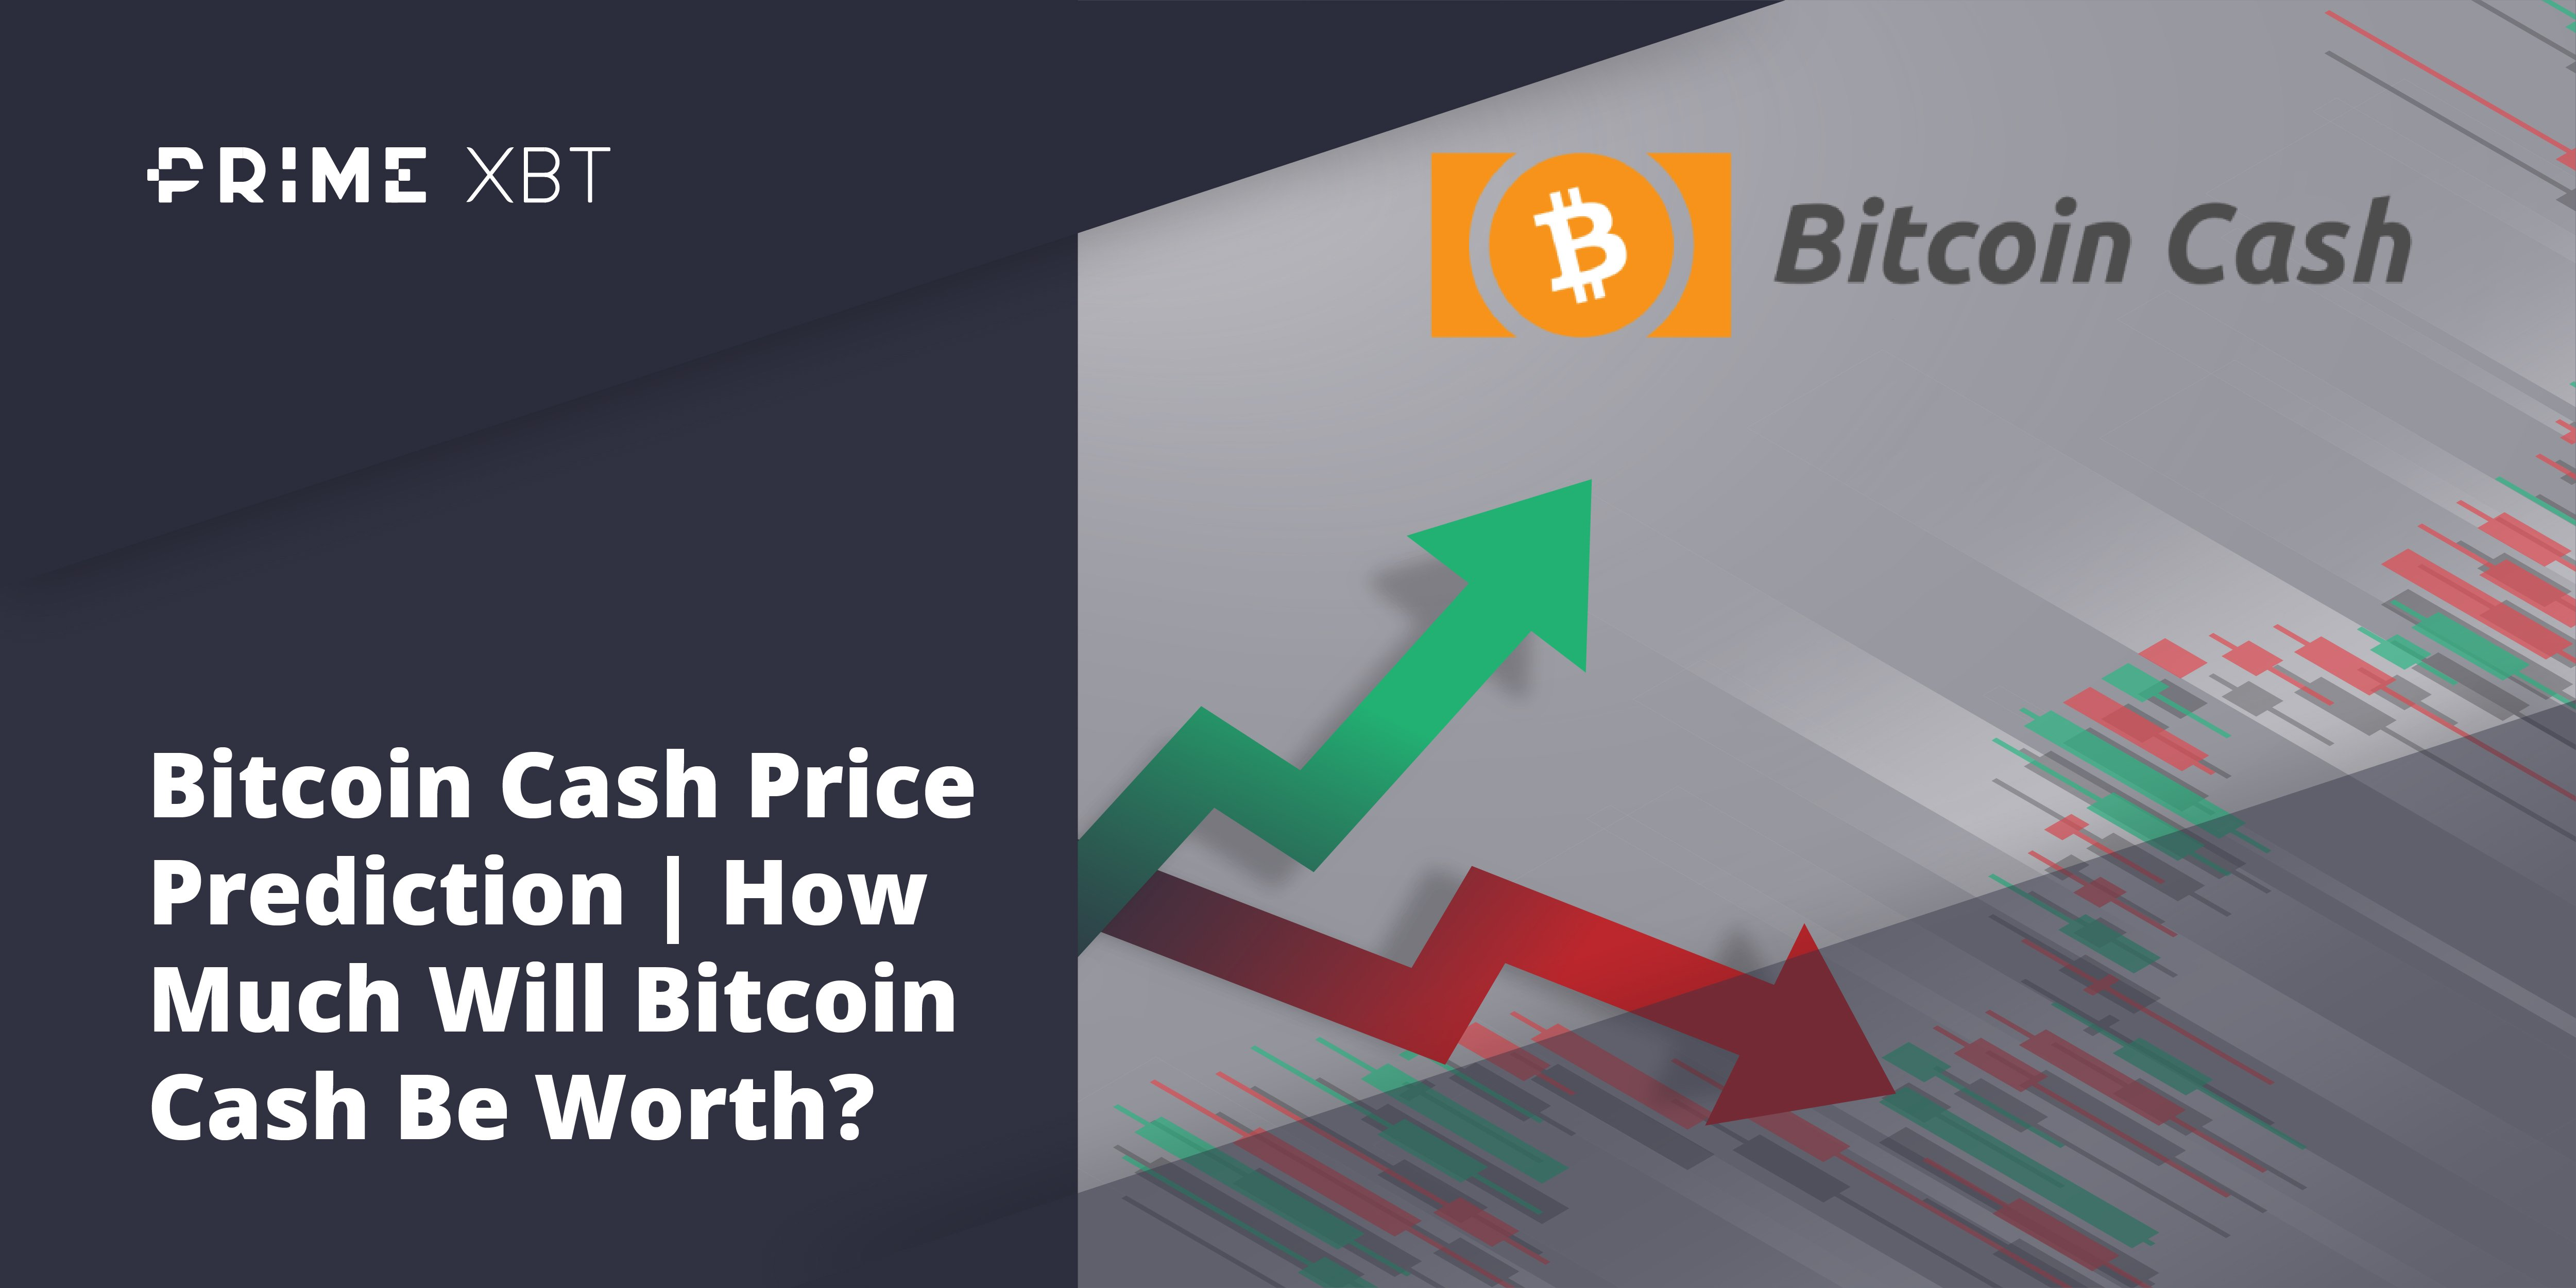 Predicting the Price of Bitcoin Cash for 2021, 2023, and 2025 - bitcoin cash